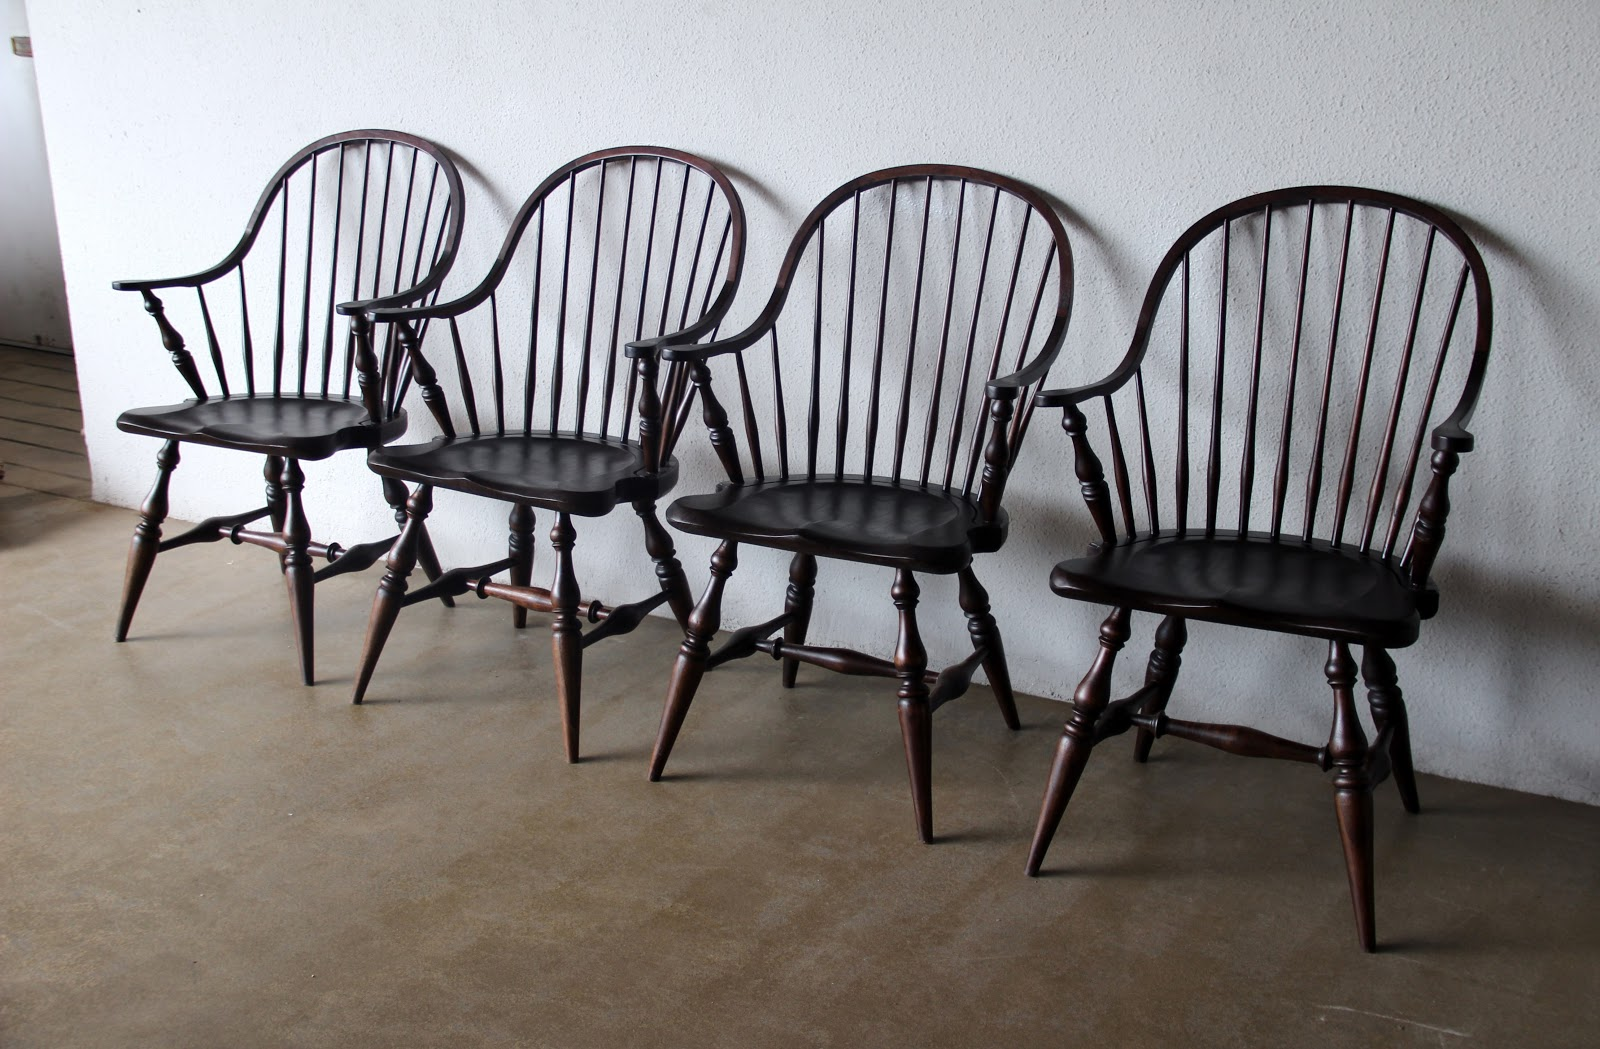 Antique wooden spindle chairs - The Windsor Armchairs In Solid Mahogany Wood Stained To An Antique Finish